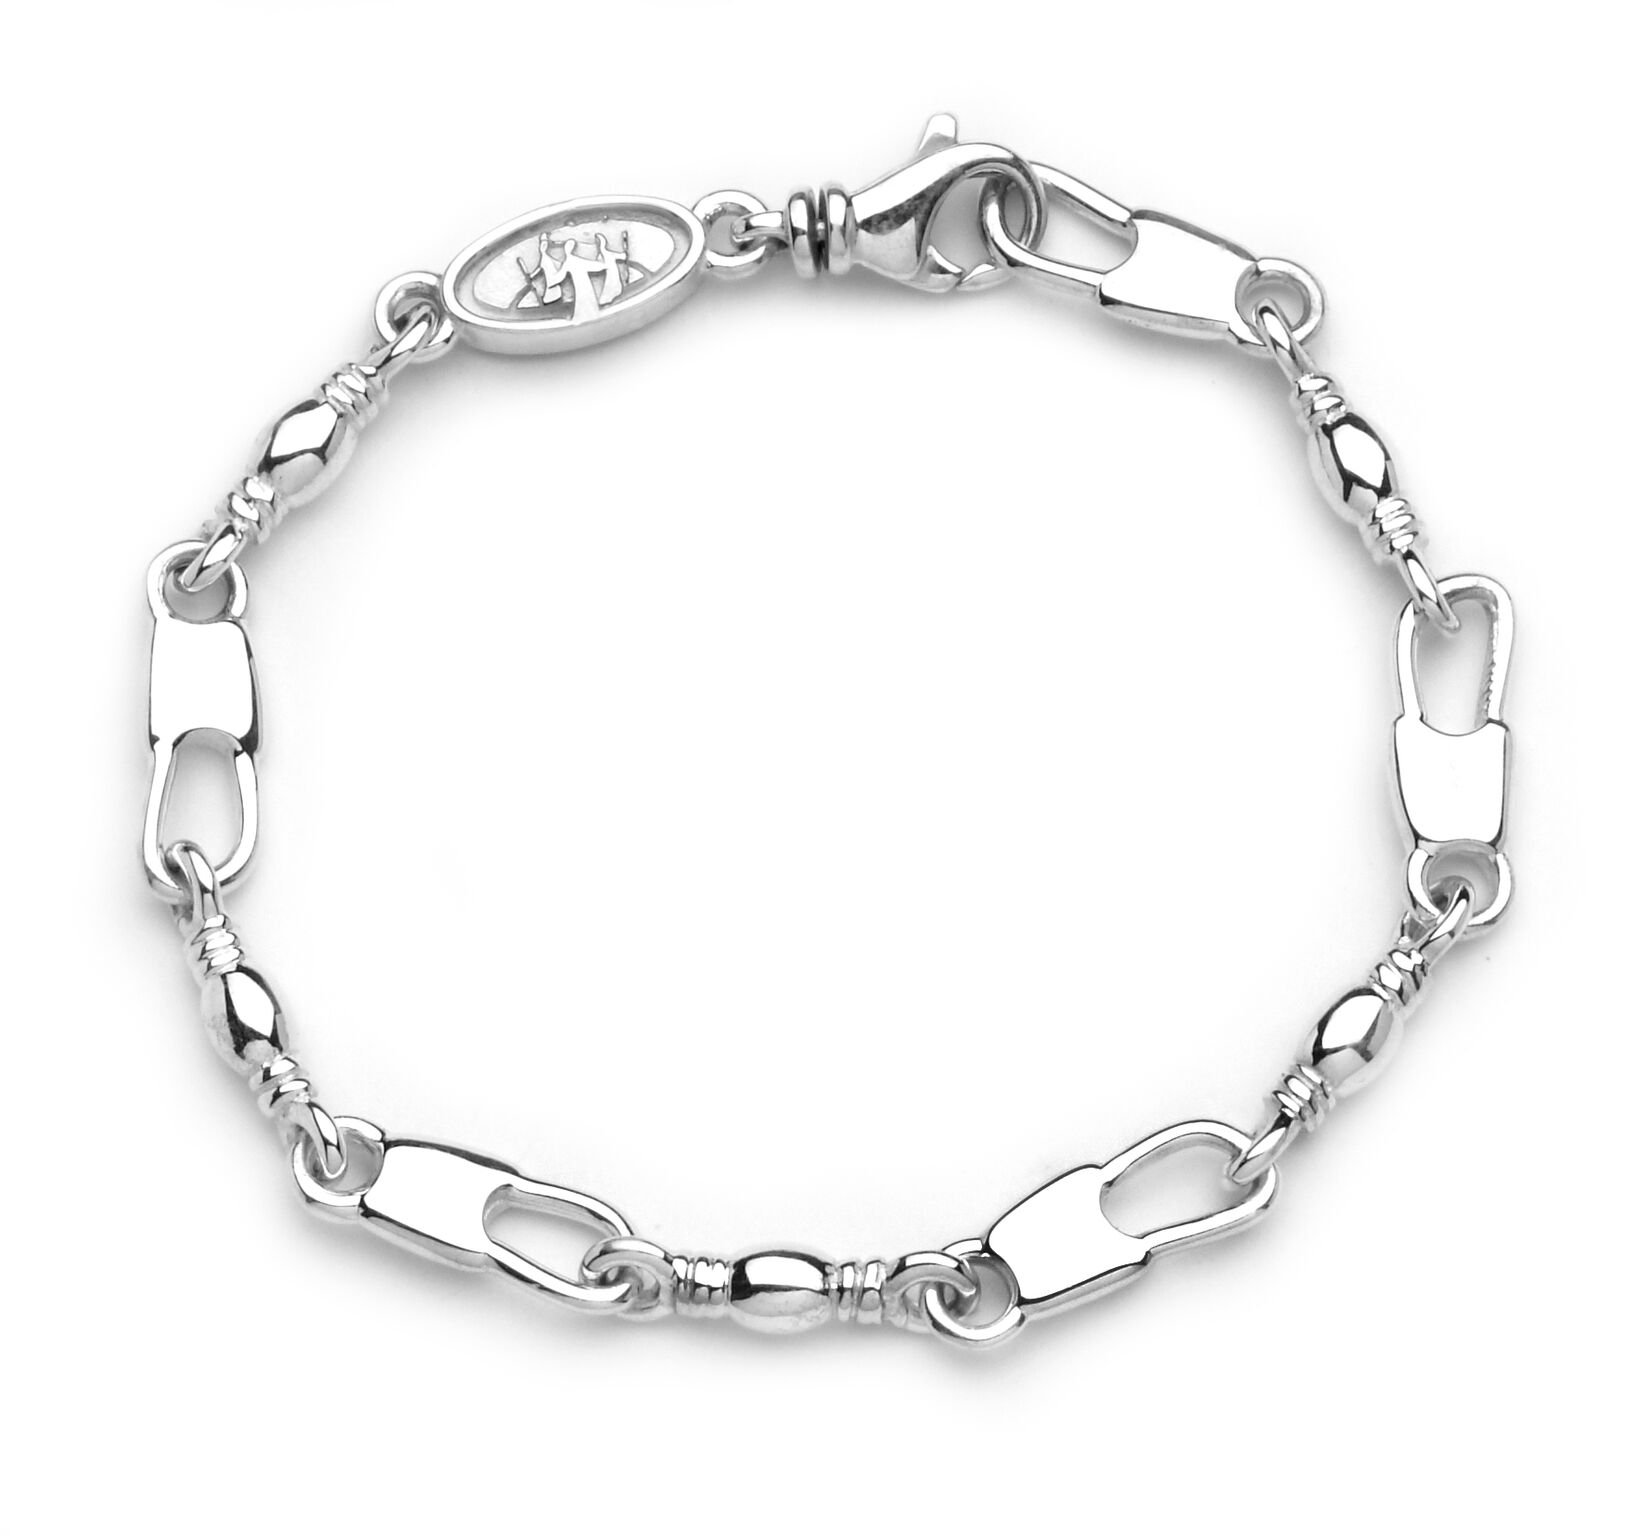 Denali Designs Walk of Emmaus Fisher of Men Bracelet (Large- 8.75'')